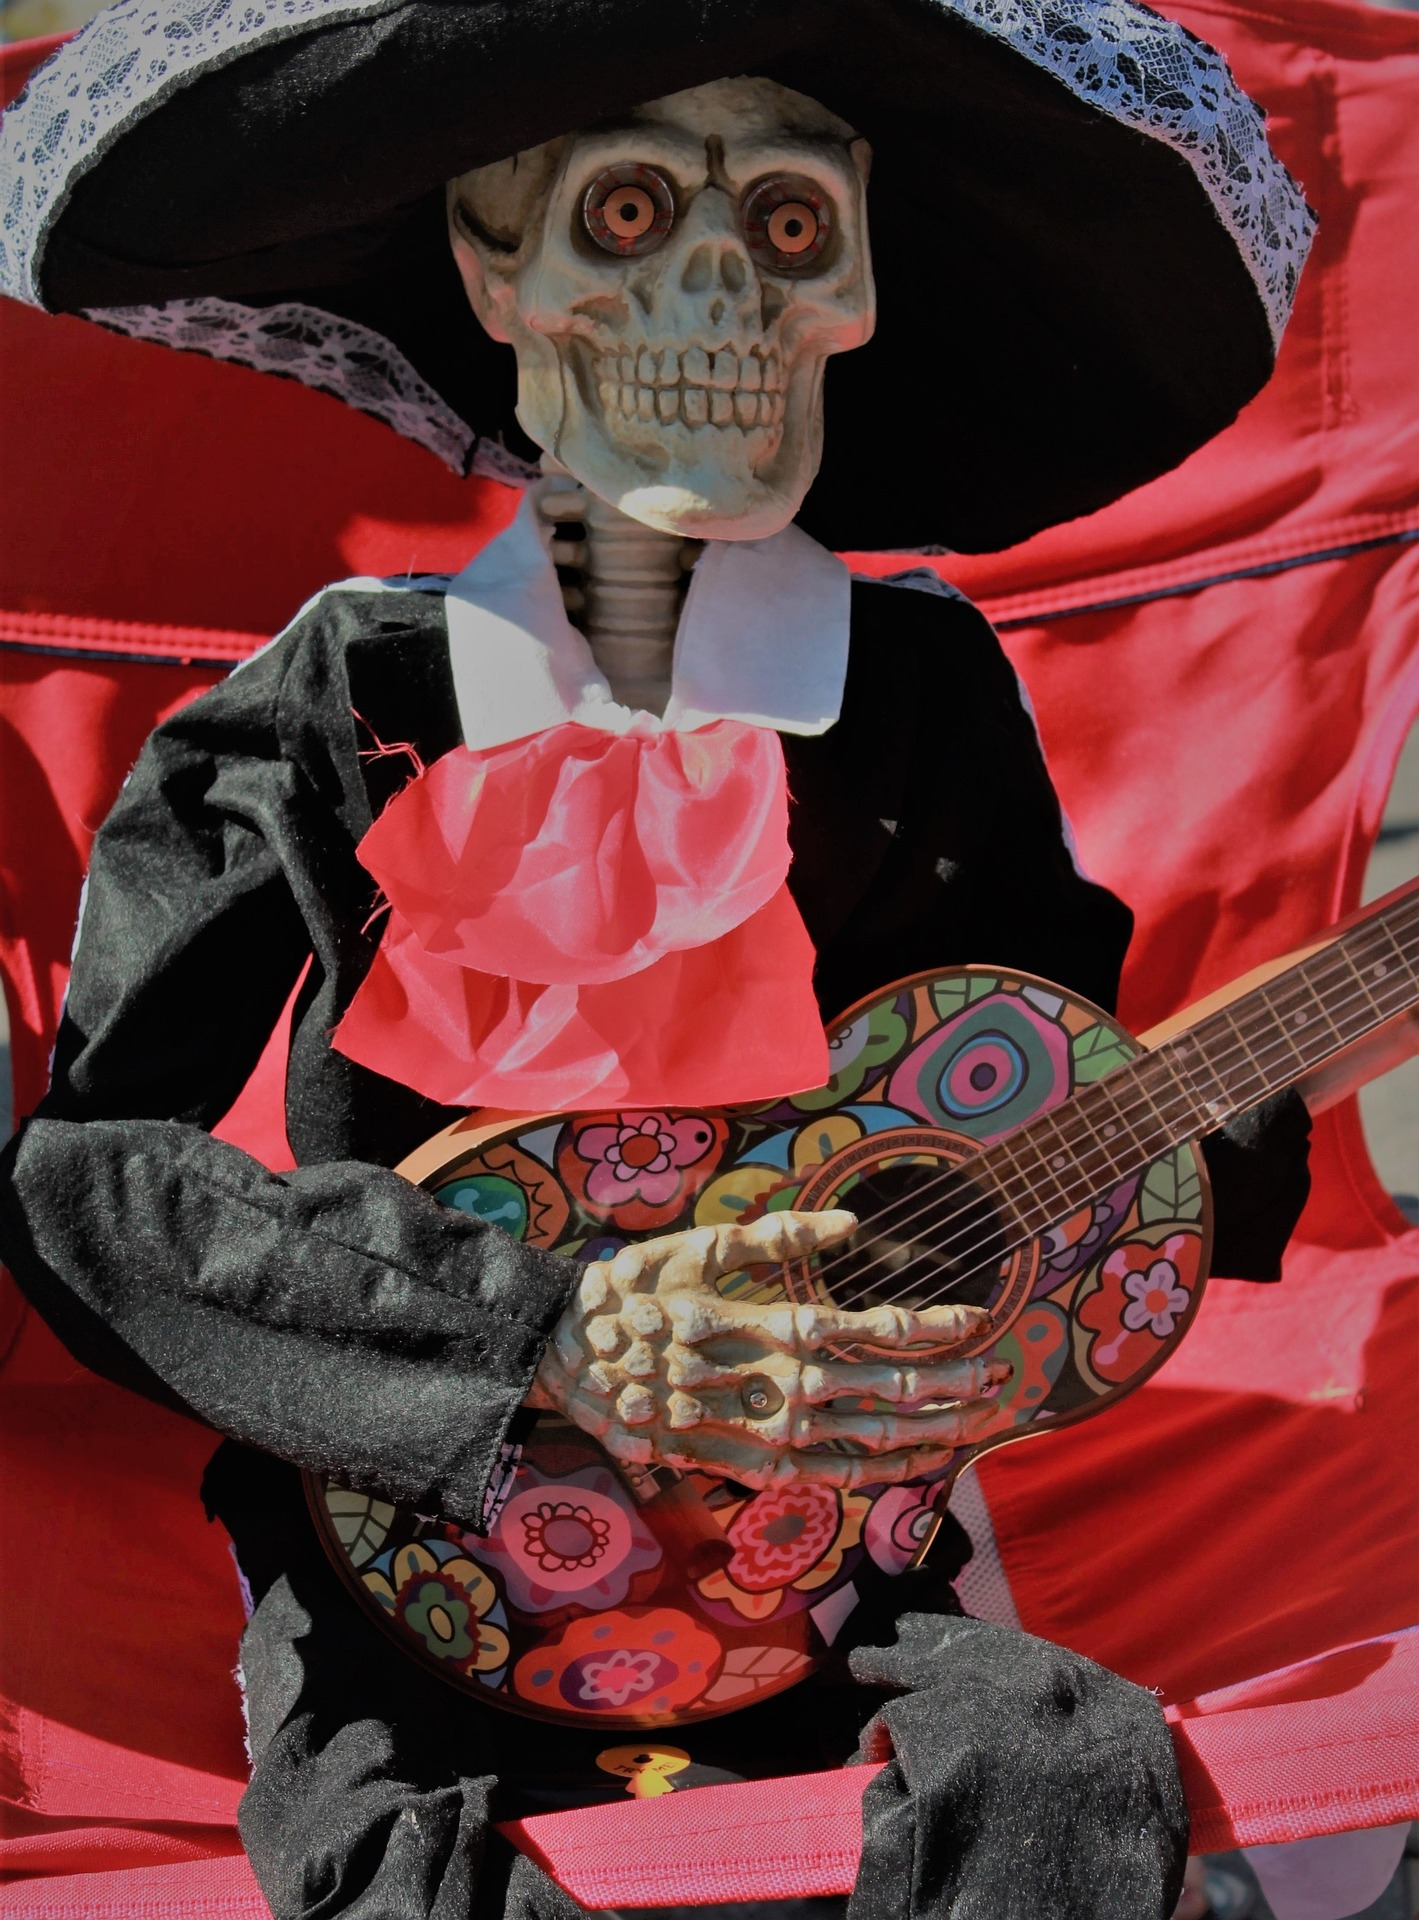 Image of a skeleton decoration for Day of the Dead in Mexico City